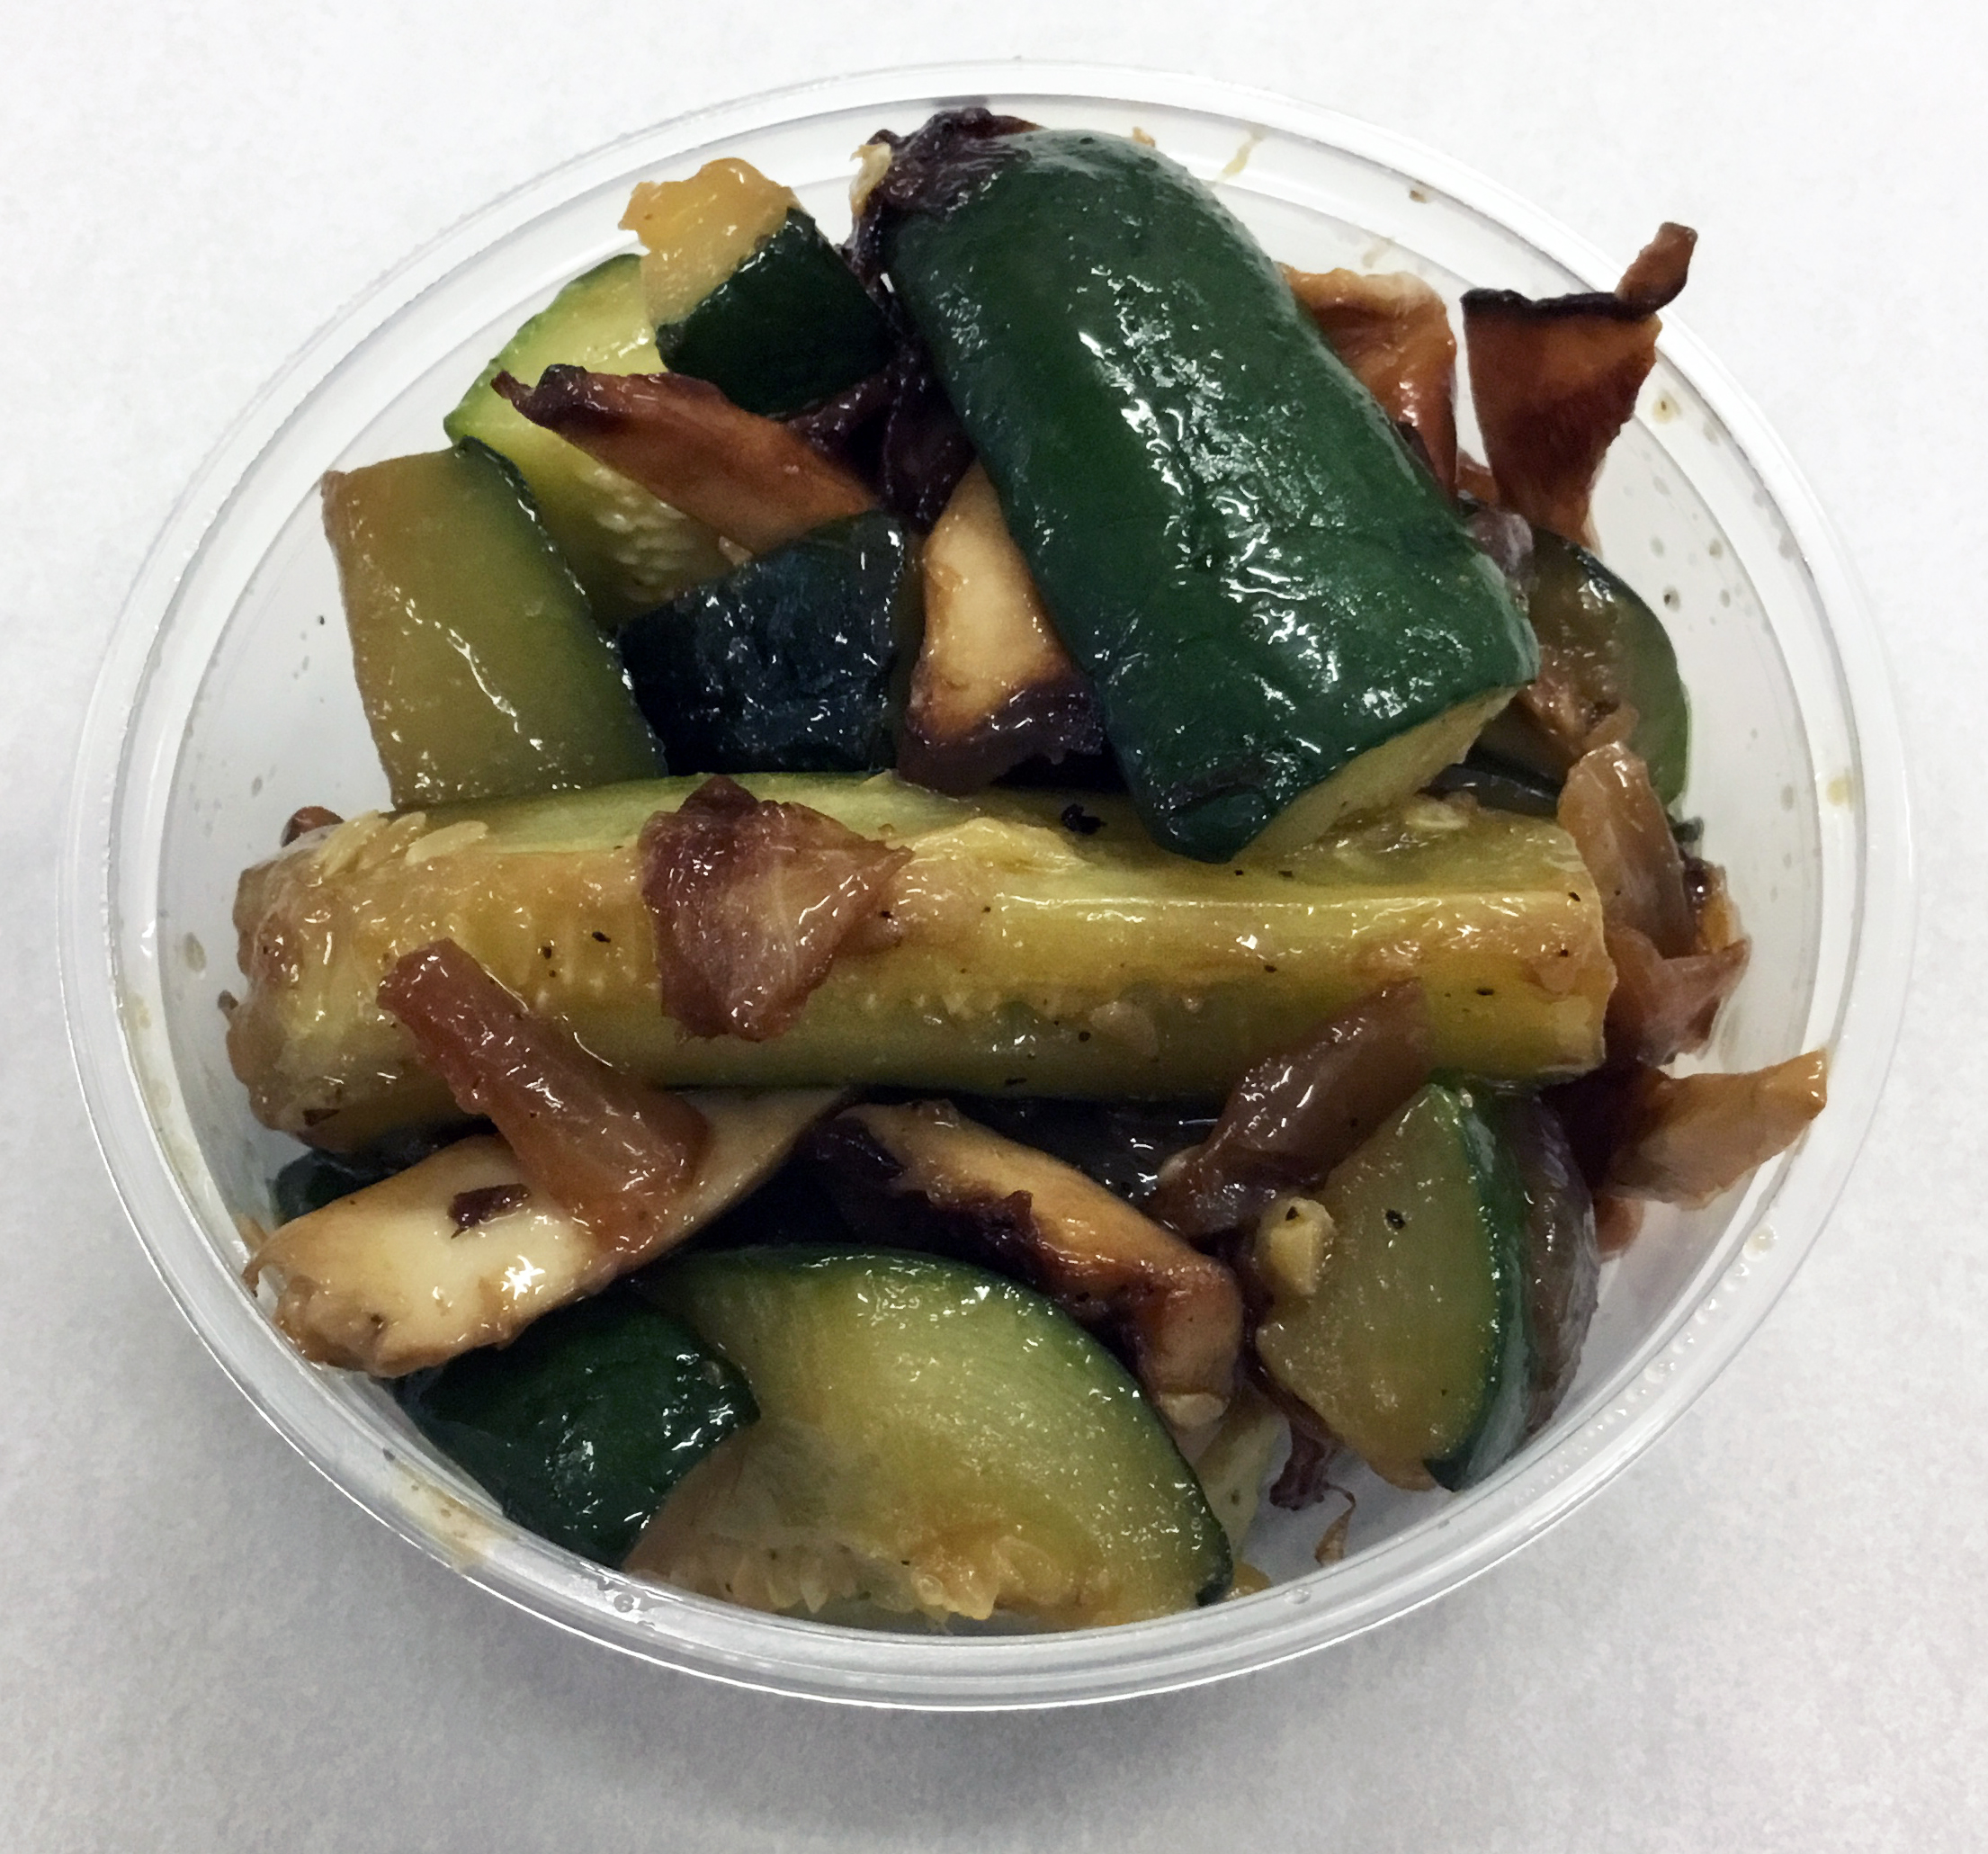 Zucchini, red onion and King Oyster mushrooms.